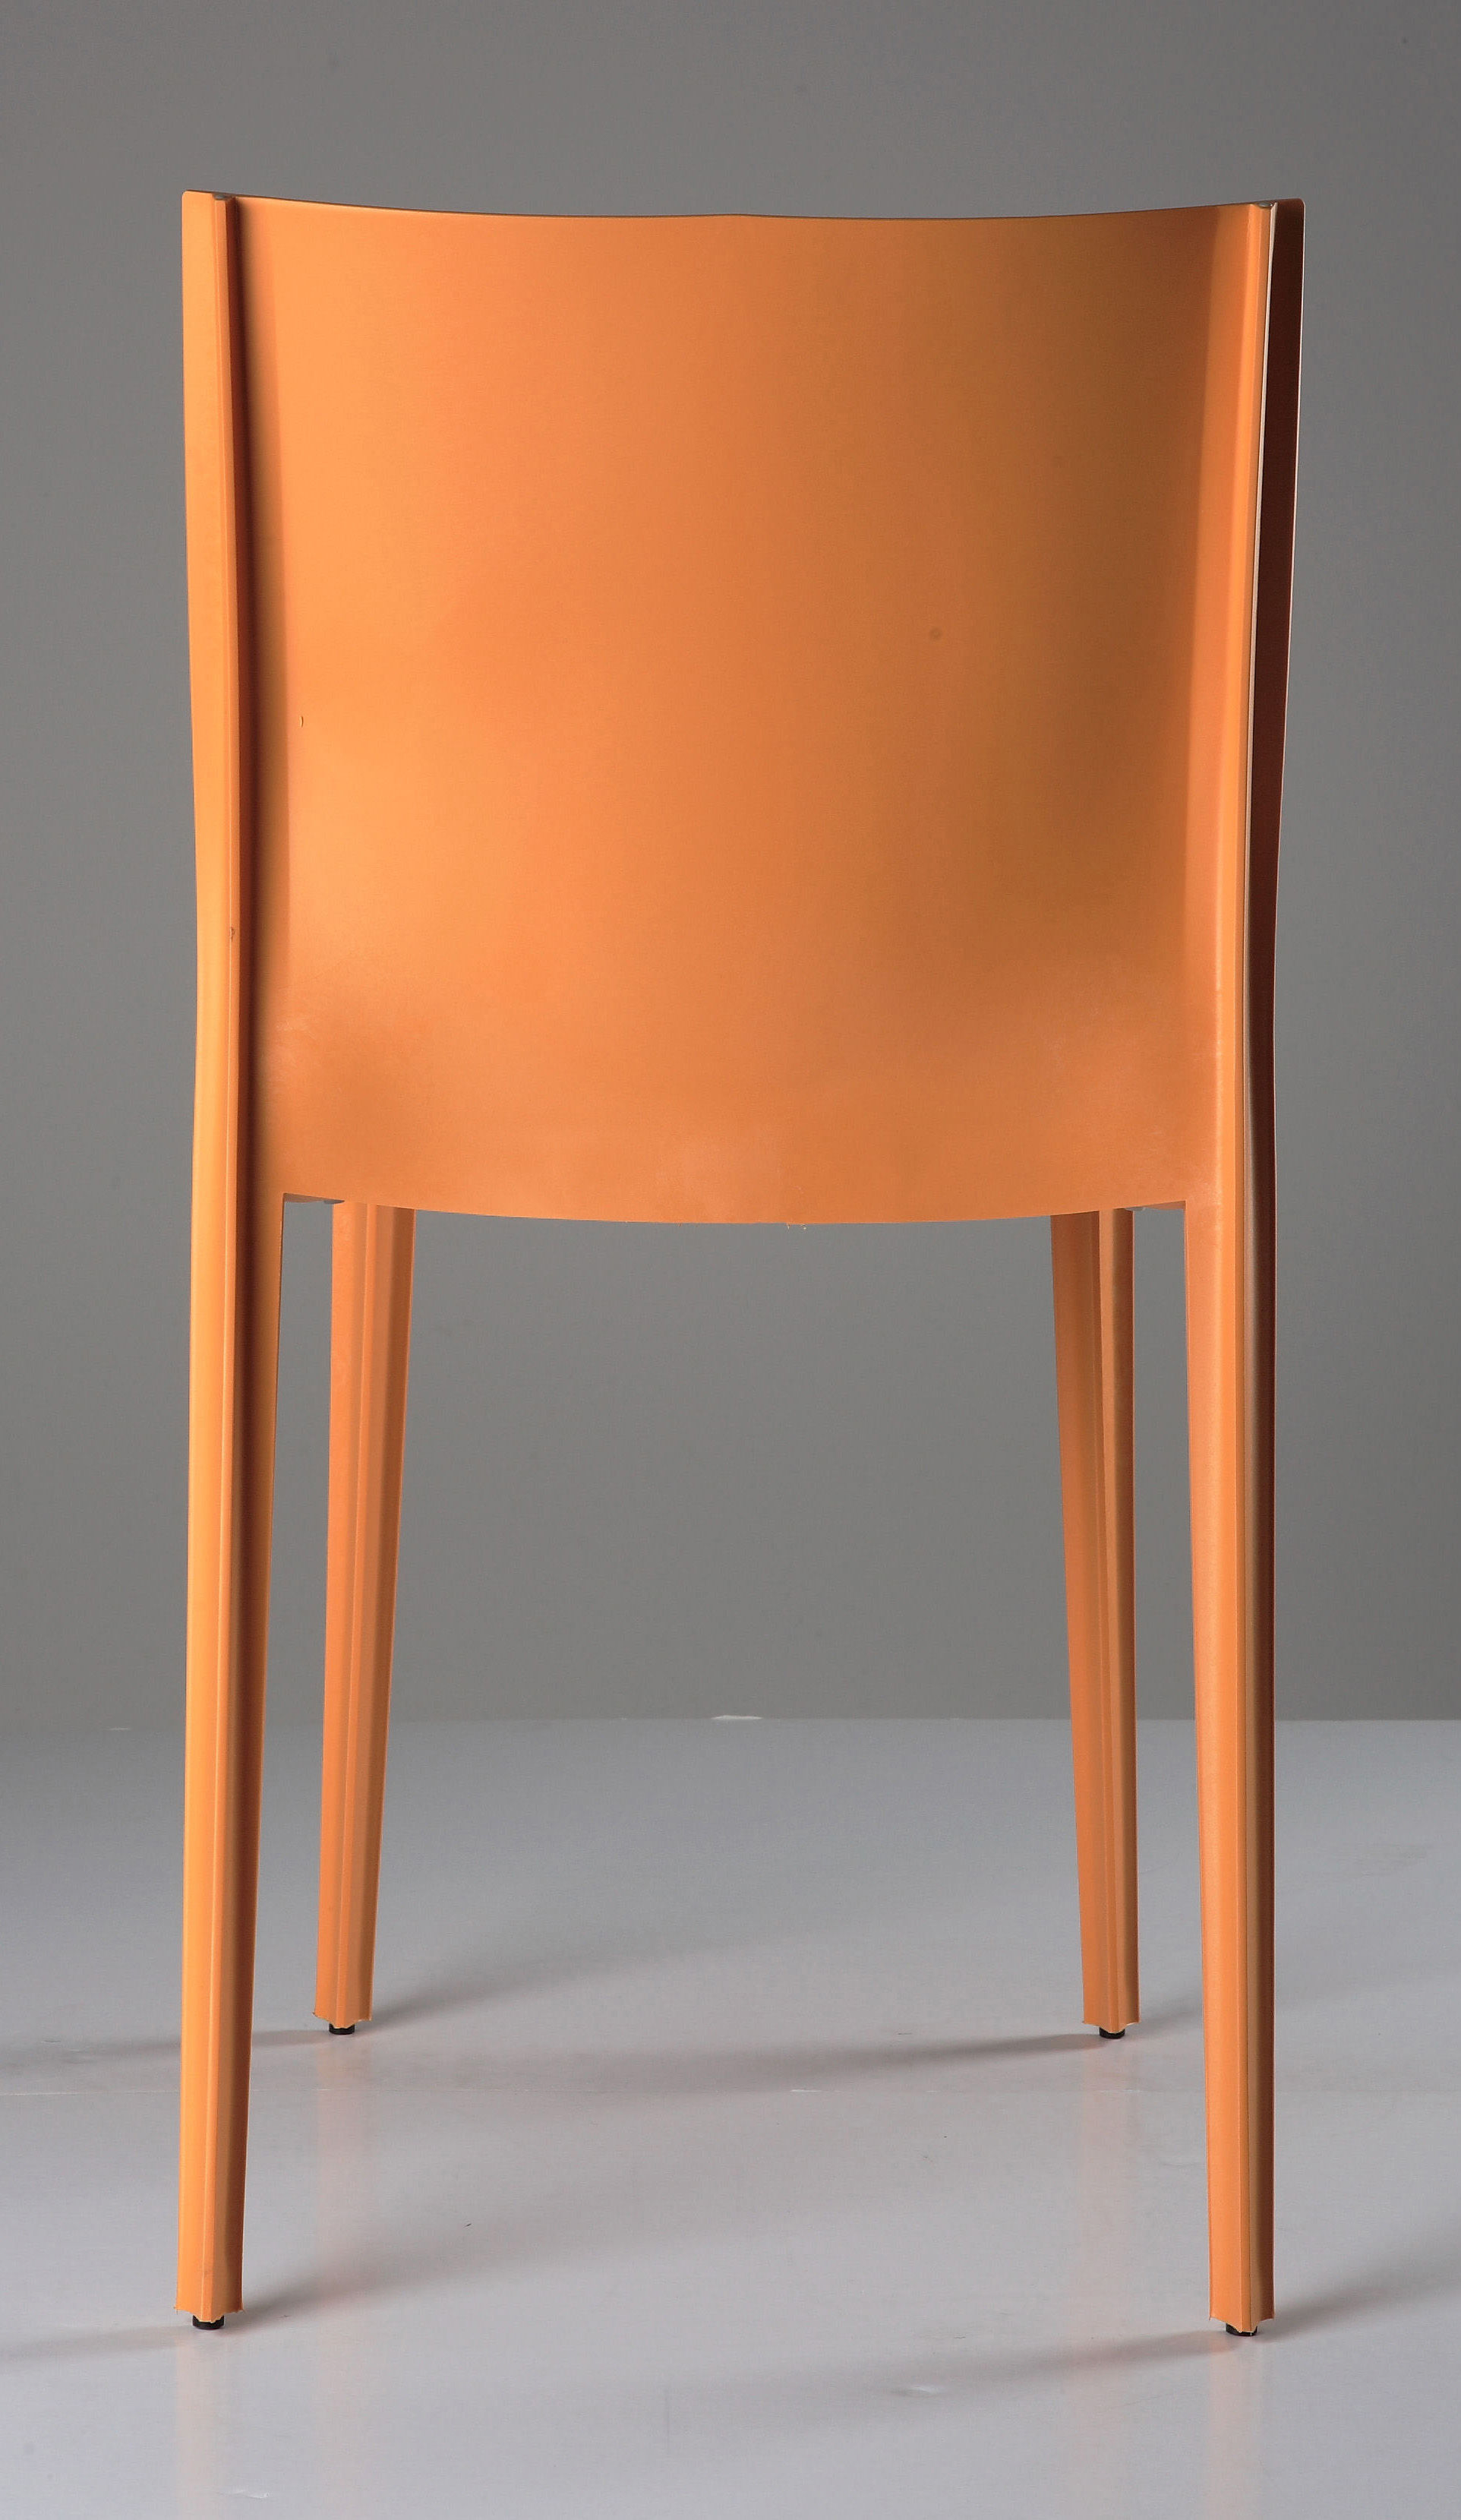 Chaise slick slick orange xo for Chaise xo starck